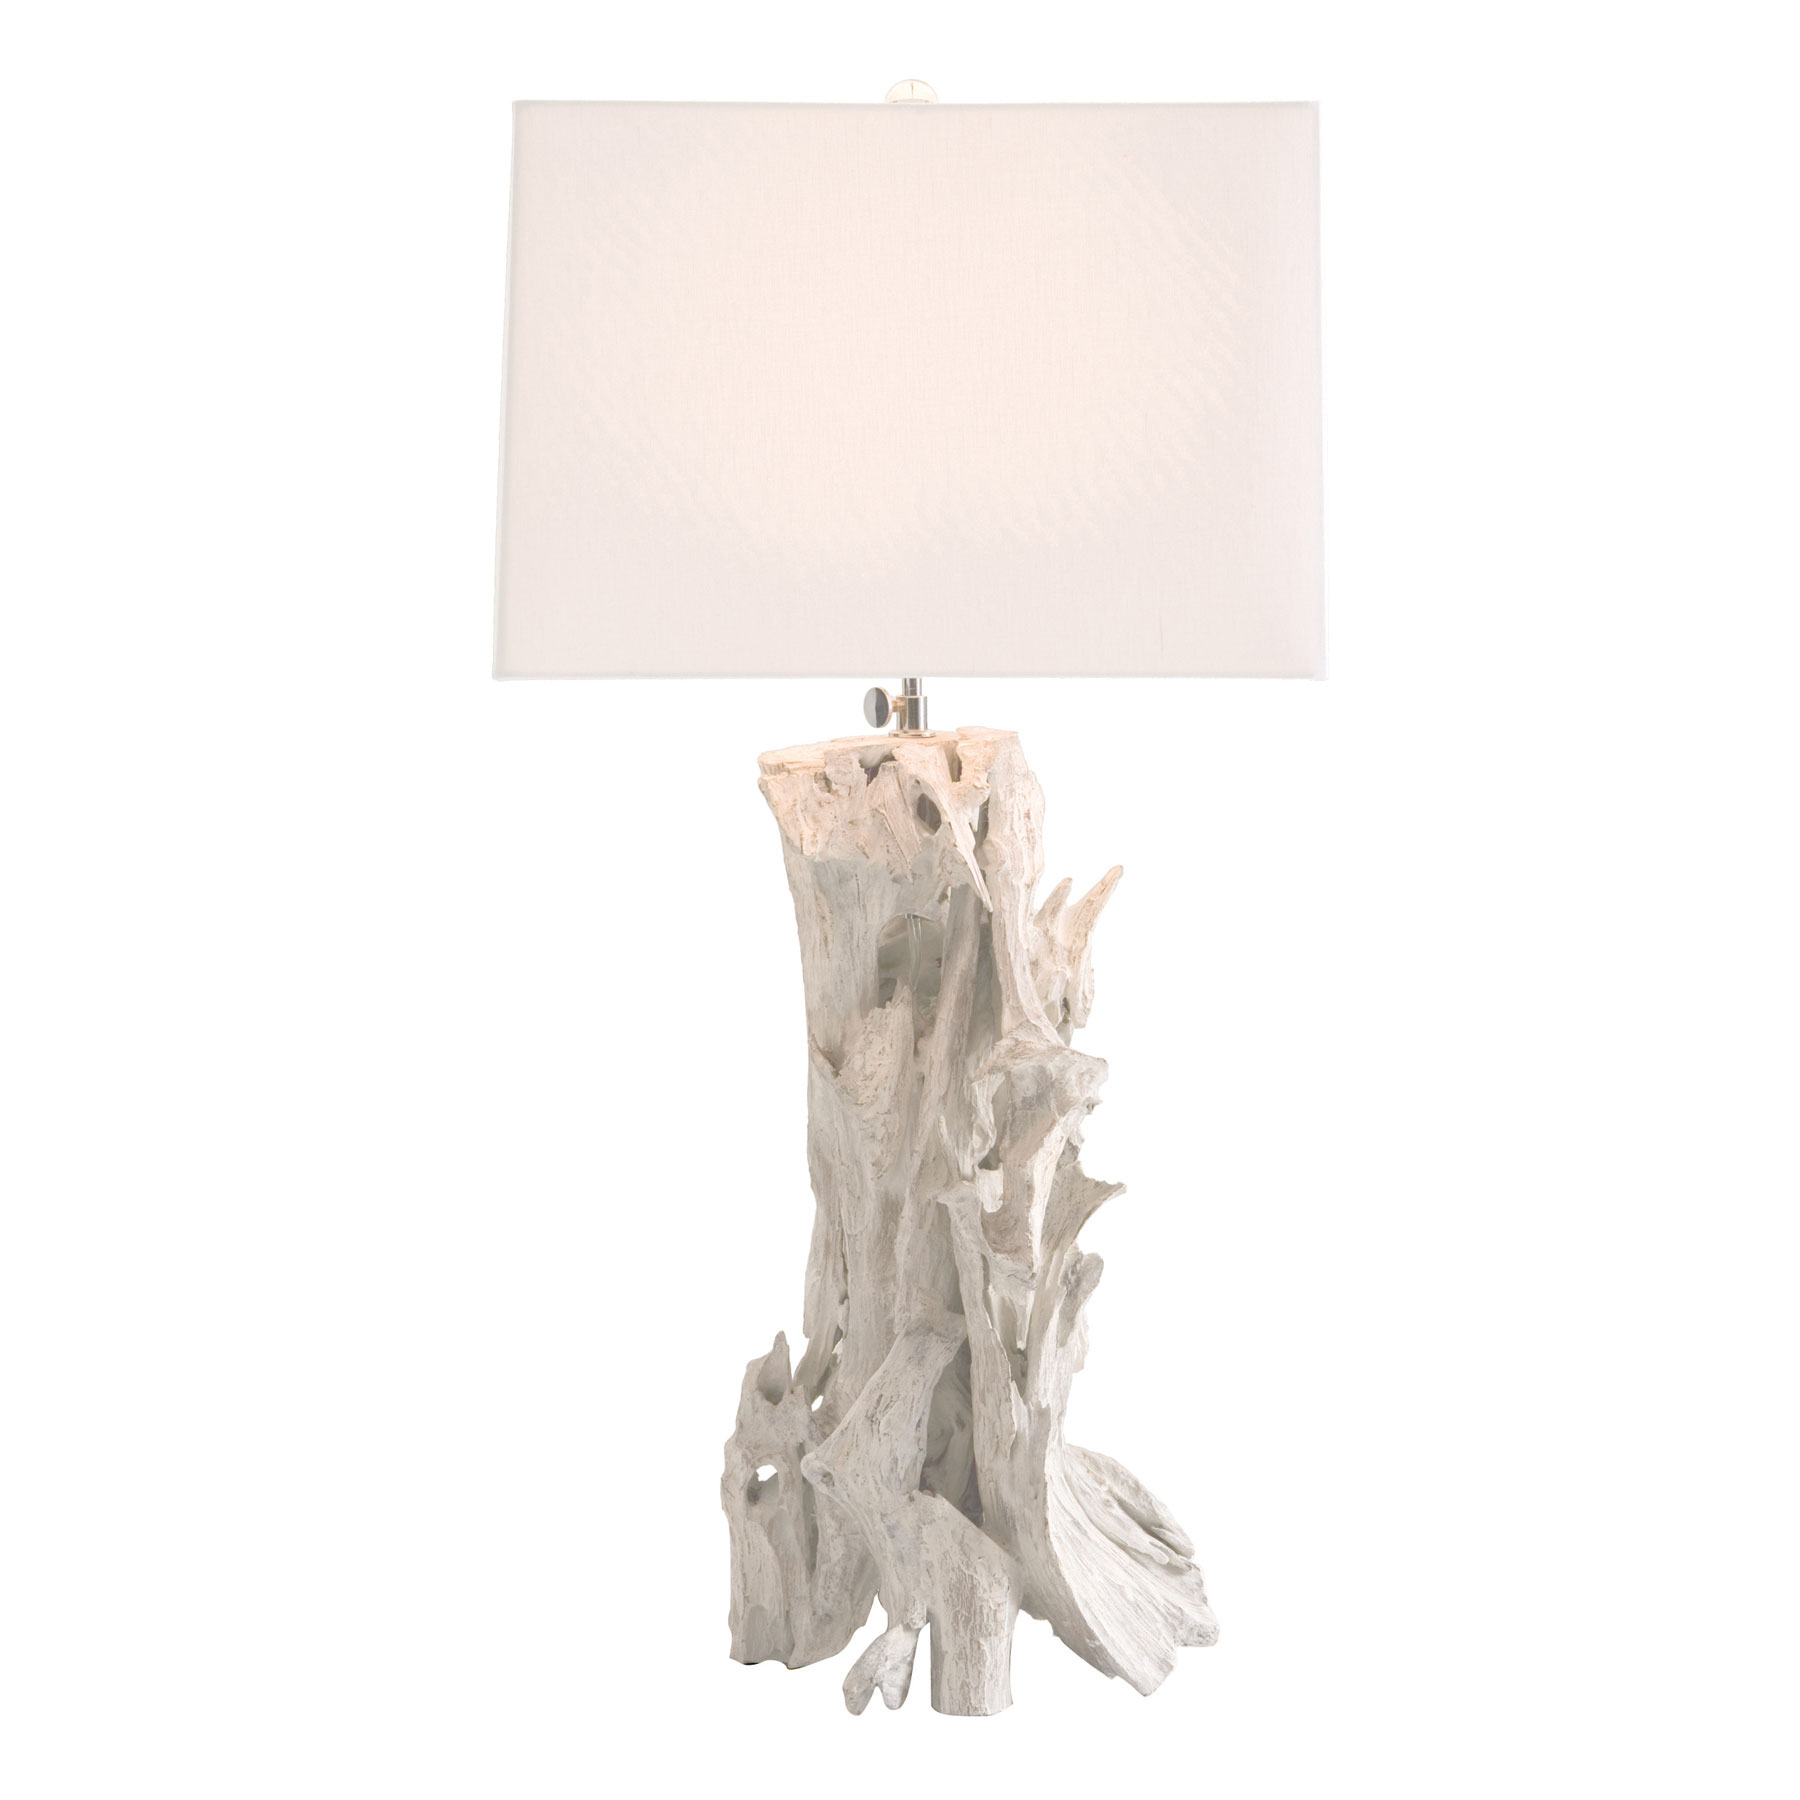 Floor Table Lamps Bodega Driftwood Table Lamp By Arteriors Home Ah 15408 394